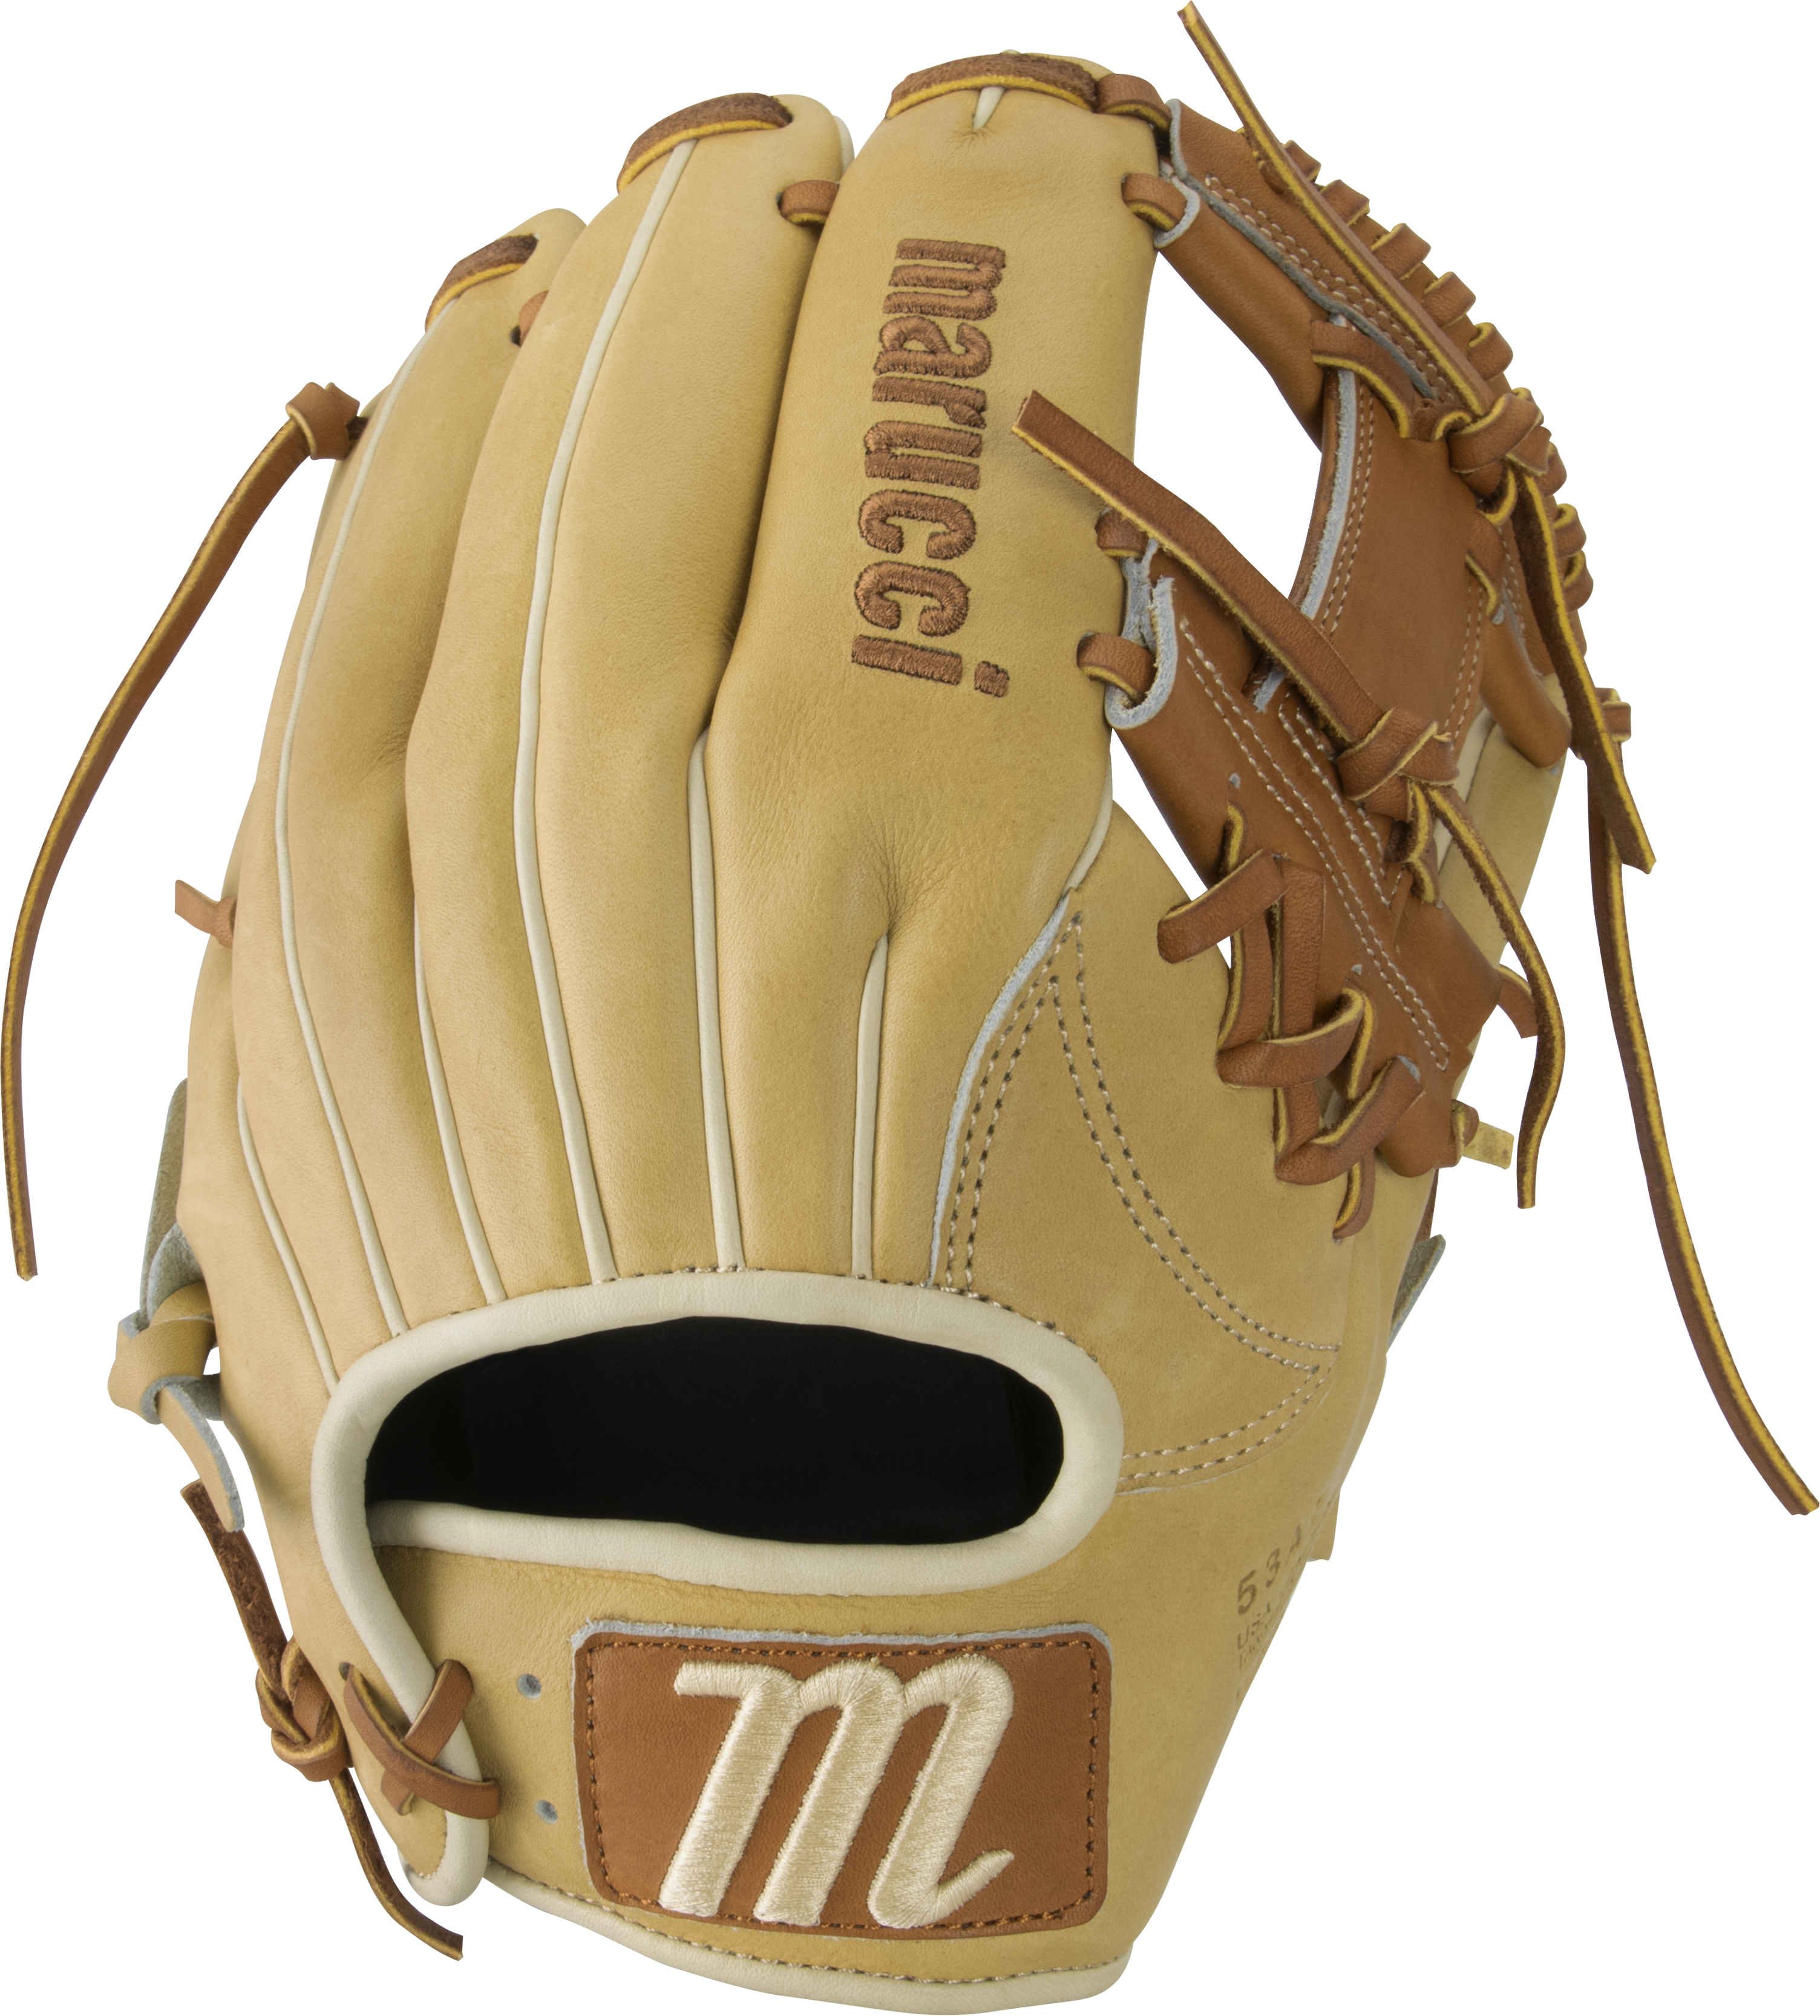 marucci-cypress-11-5-baseball-glove-53a2-i-web-right-hand-throw MFGCY53A2-SMTF-RightHandThrow Marucci  849817099360 • Premium Japanese-tanned steerhide leather provides stiffness and rugged durability •